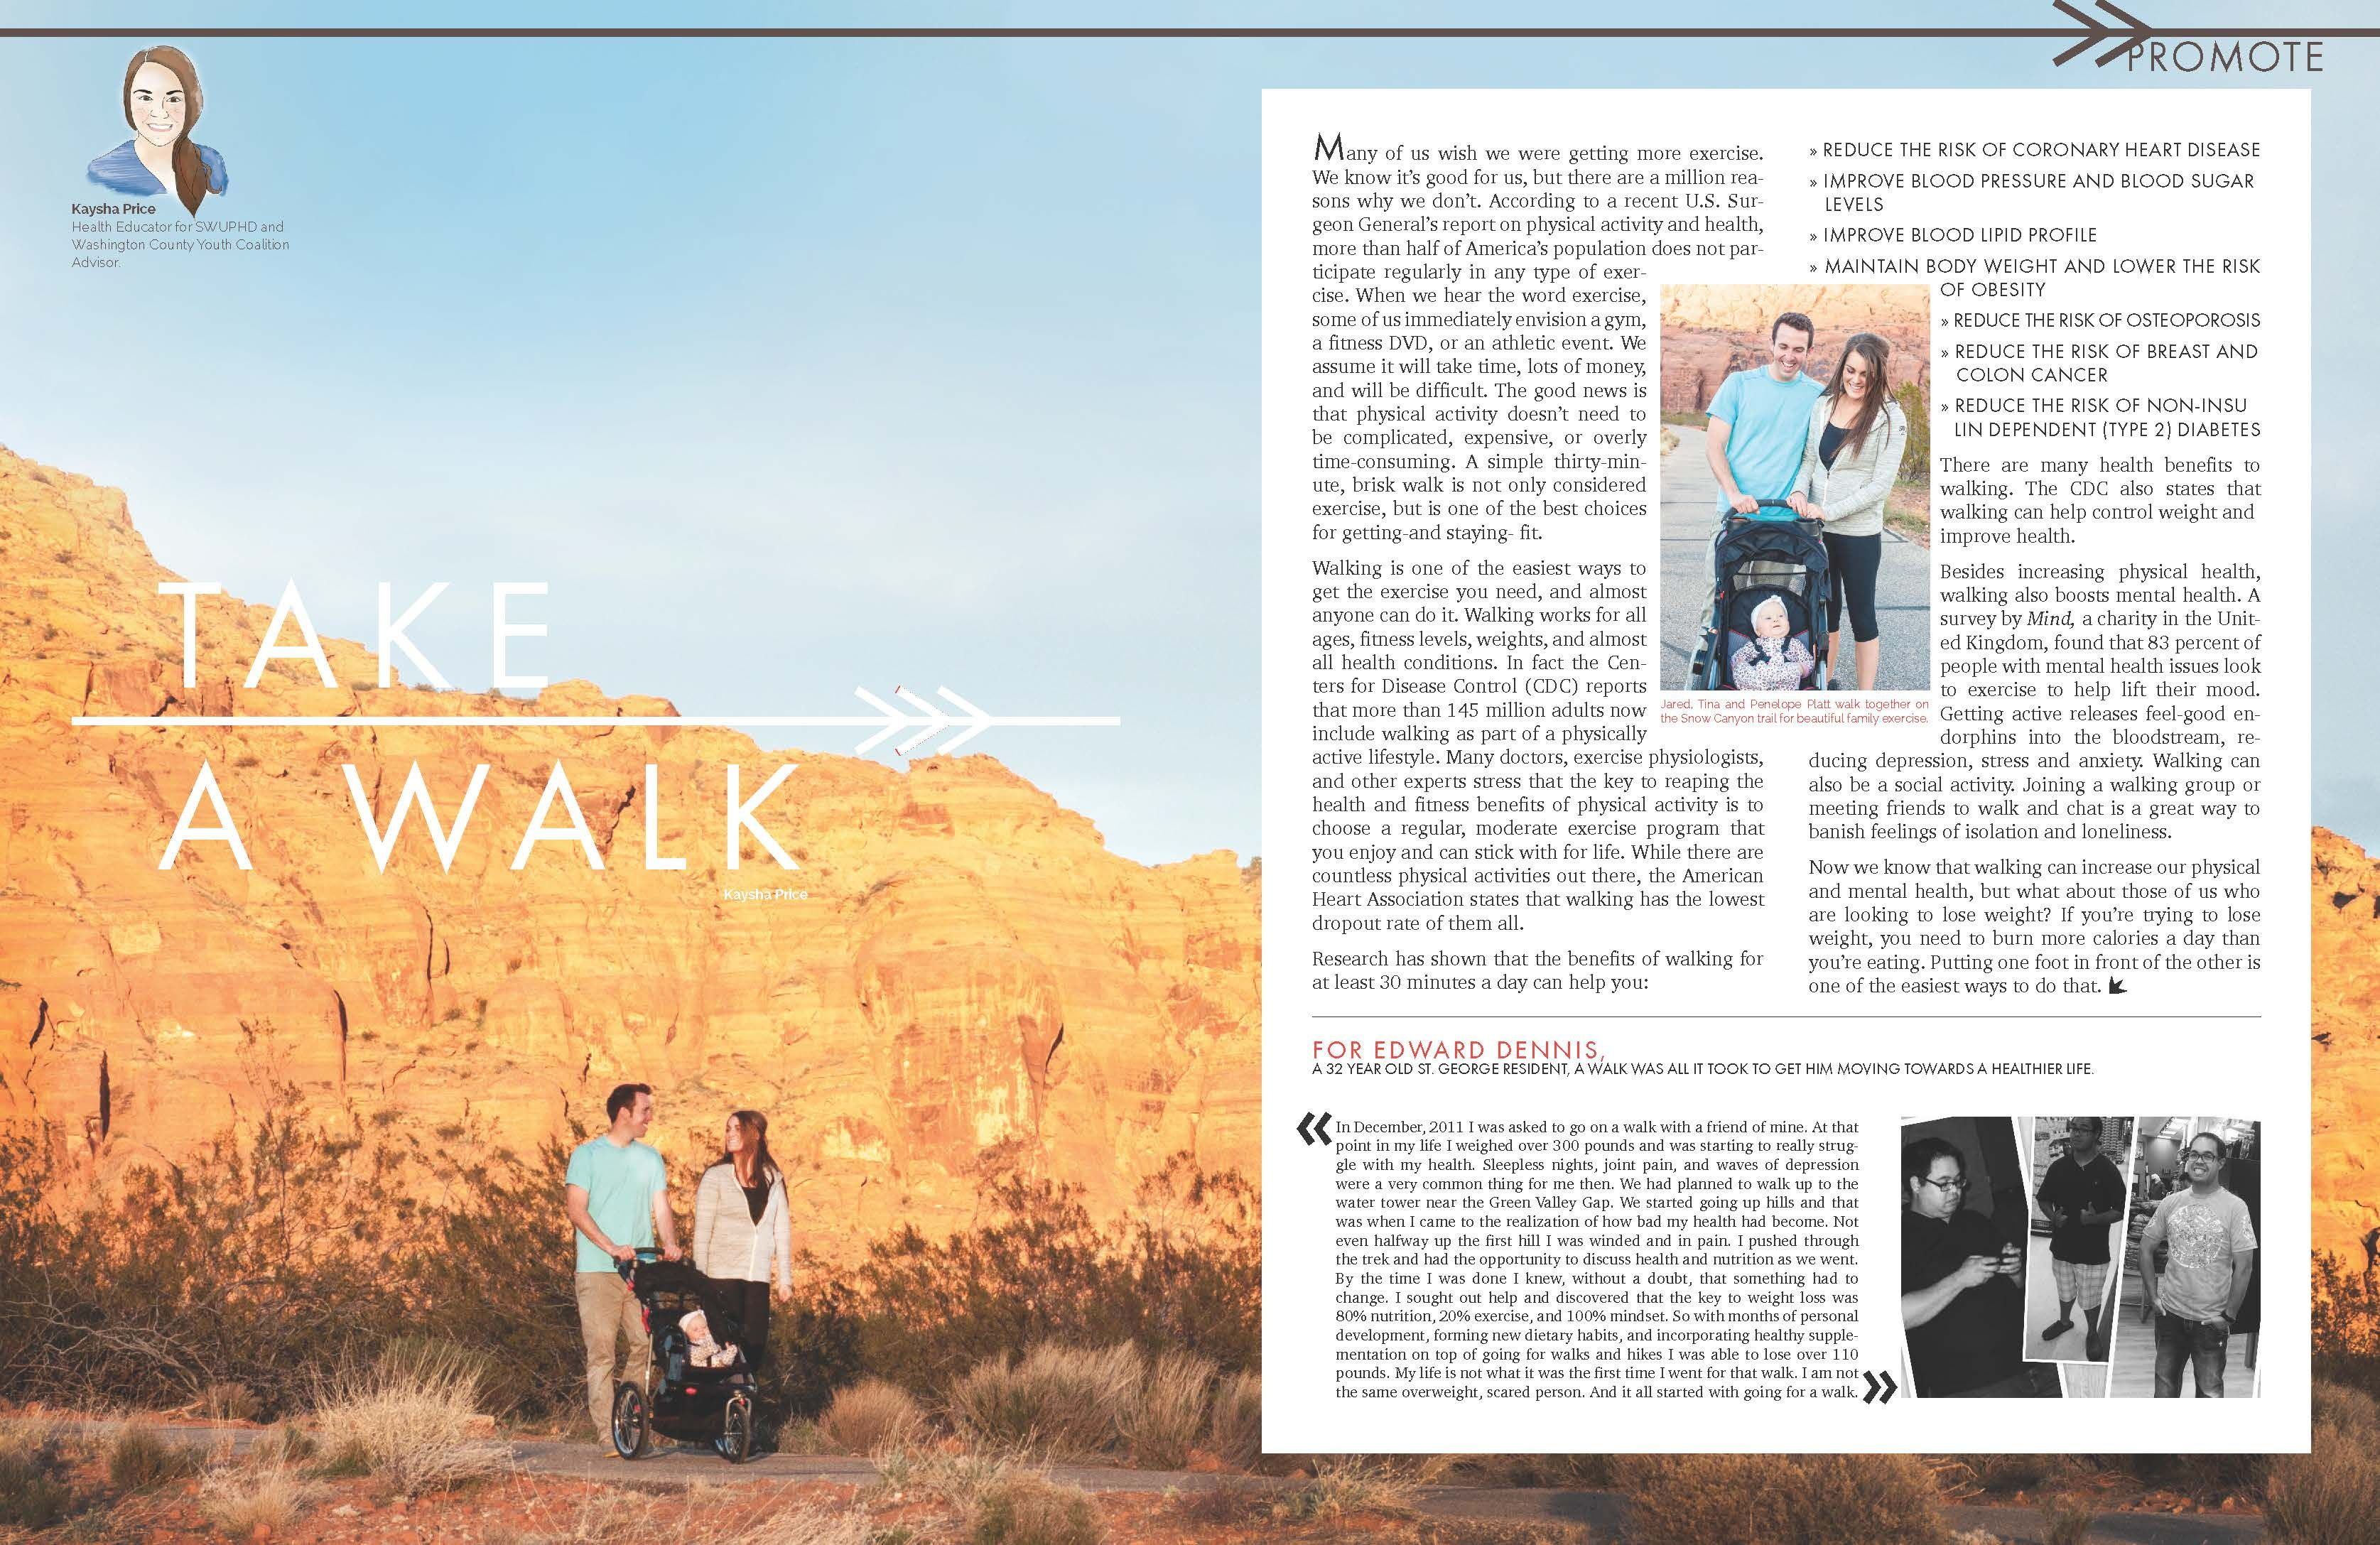 Take A Walk Article By Kaysha Price For Southwest Utah Public Health Department Health Magazine Health Magazine Health Department Public Health